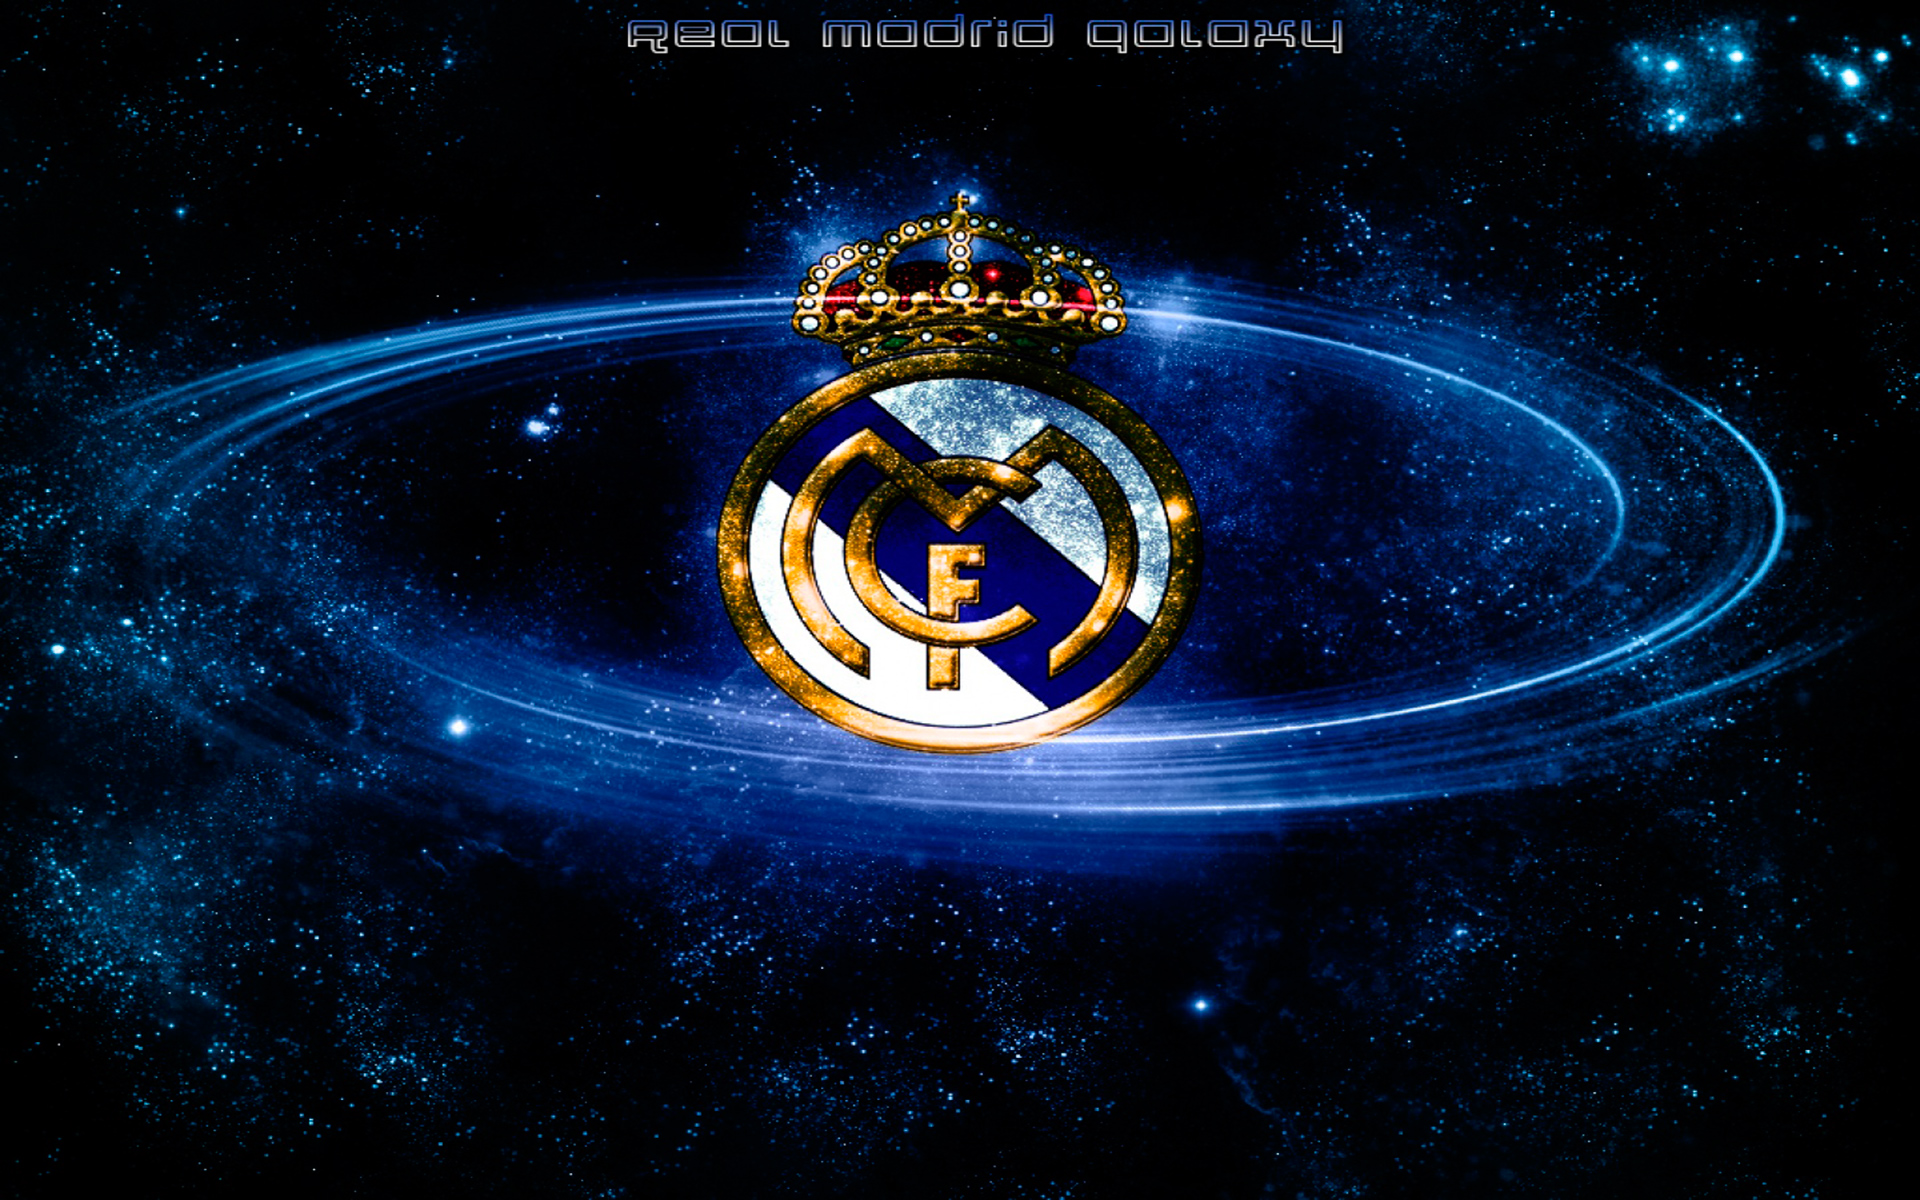 wallpaper escudo real madrid en la galaxia